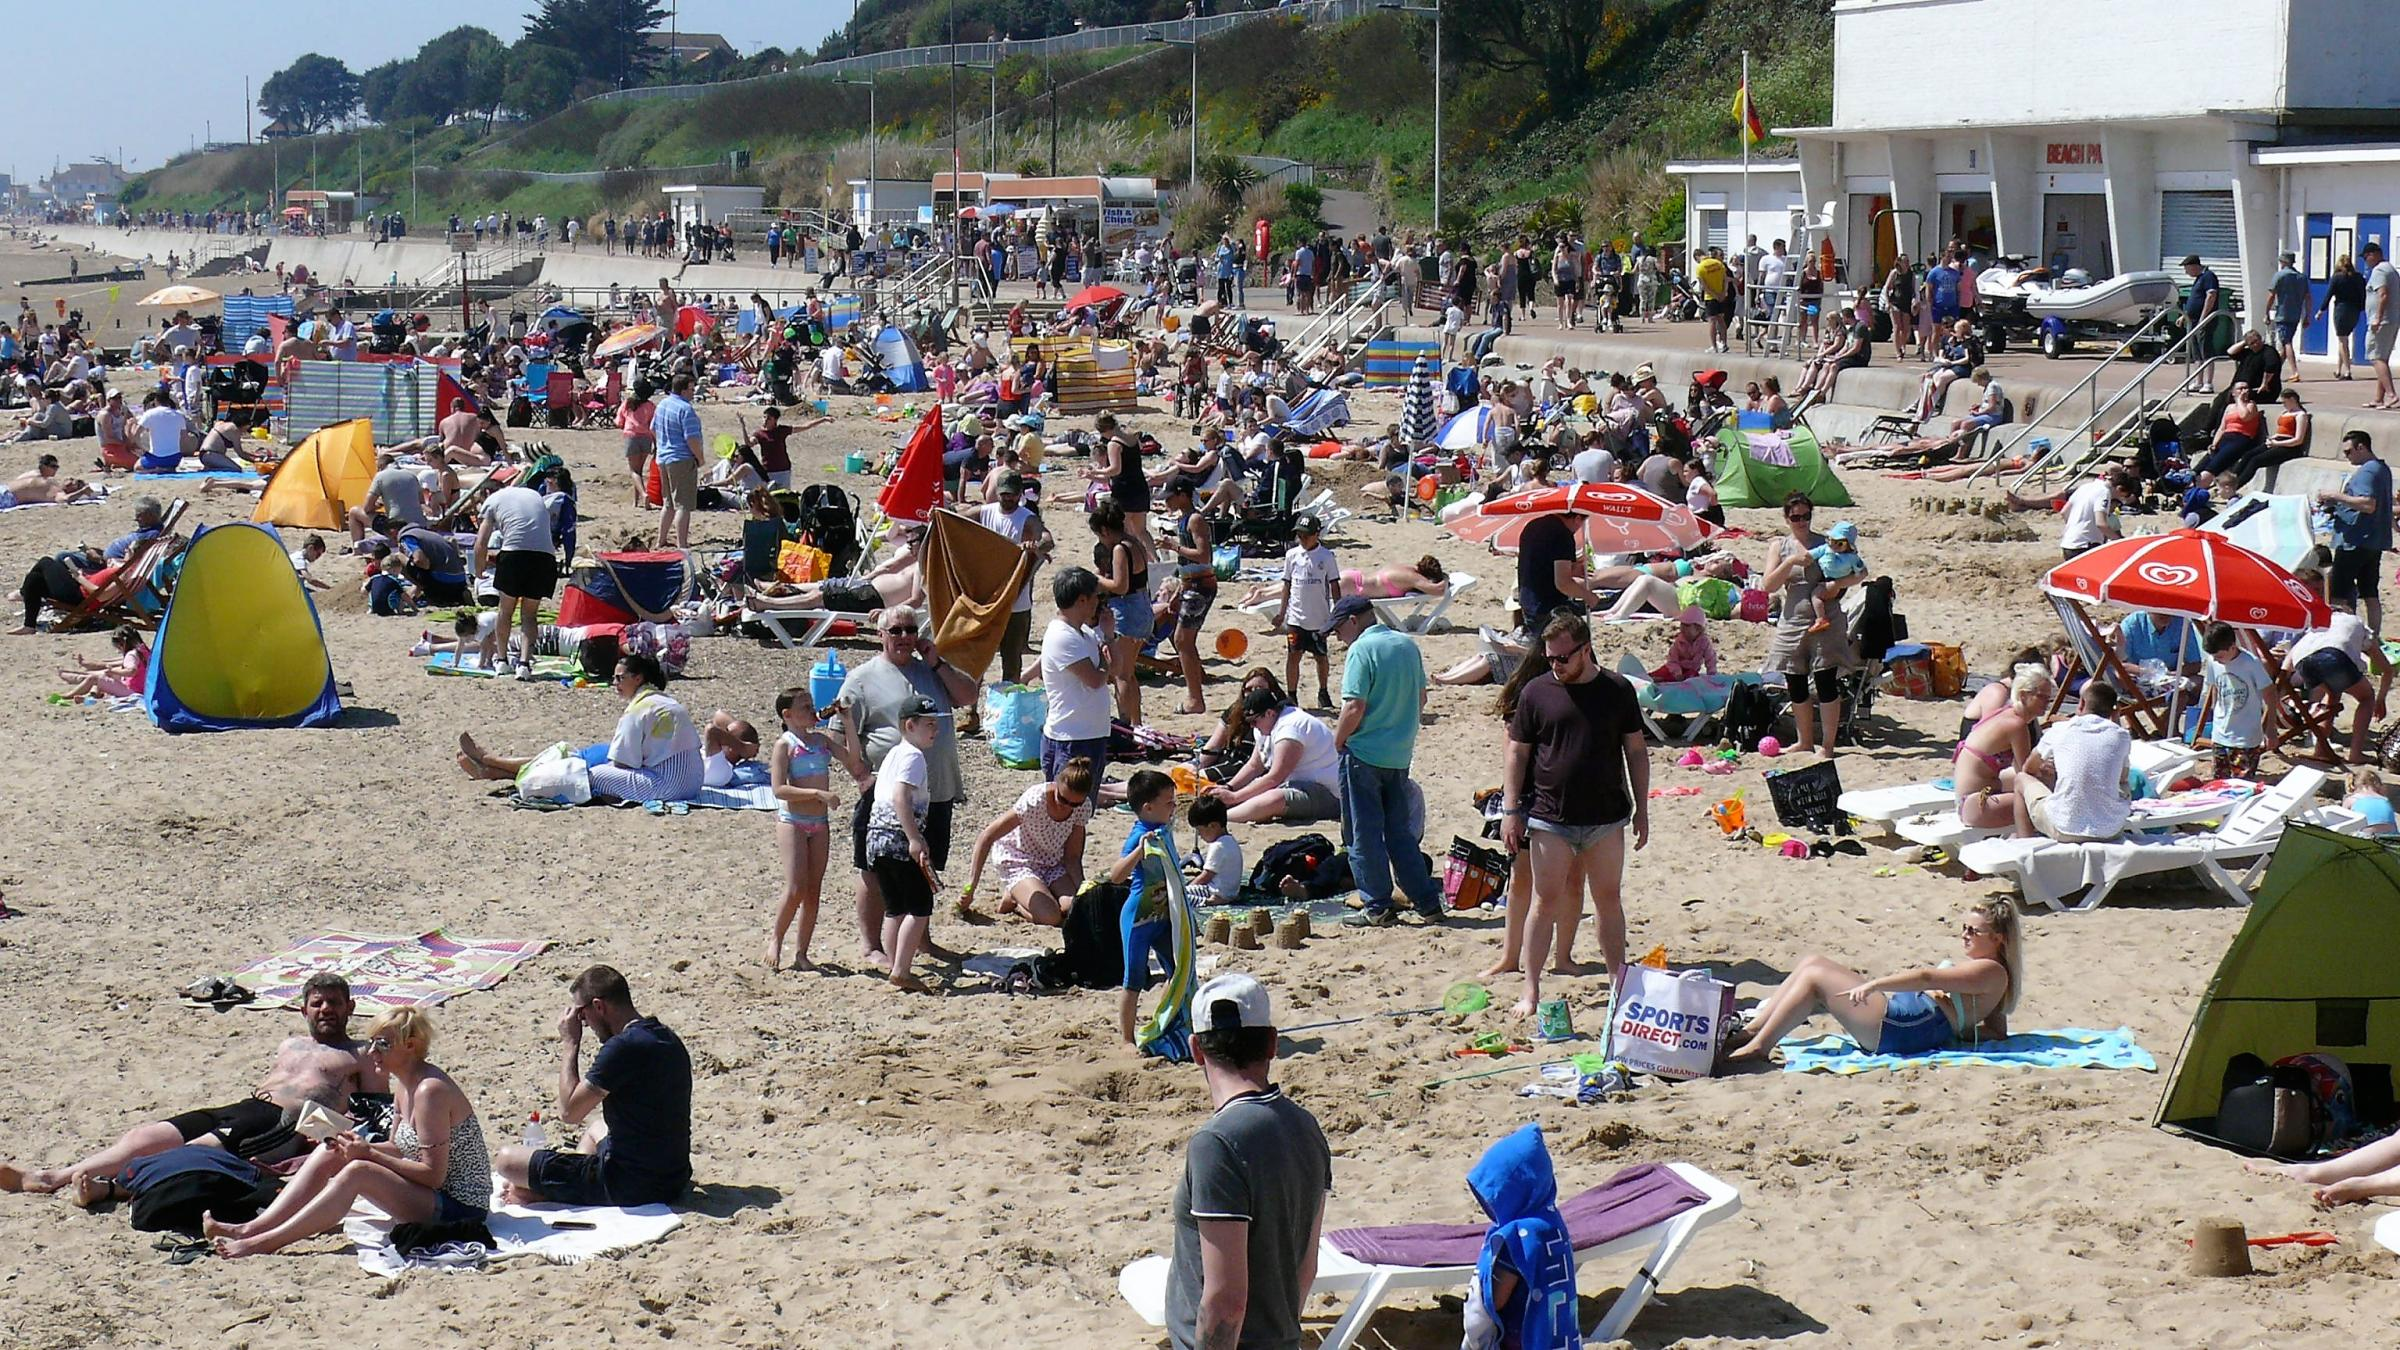 SUNSHINE COAST: Packed beaches were the order of the day over the bank holiday